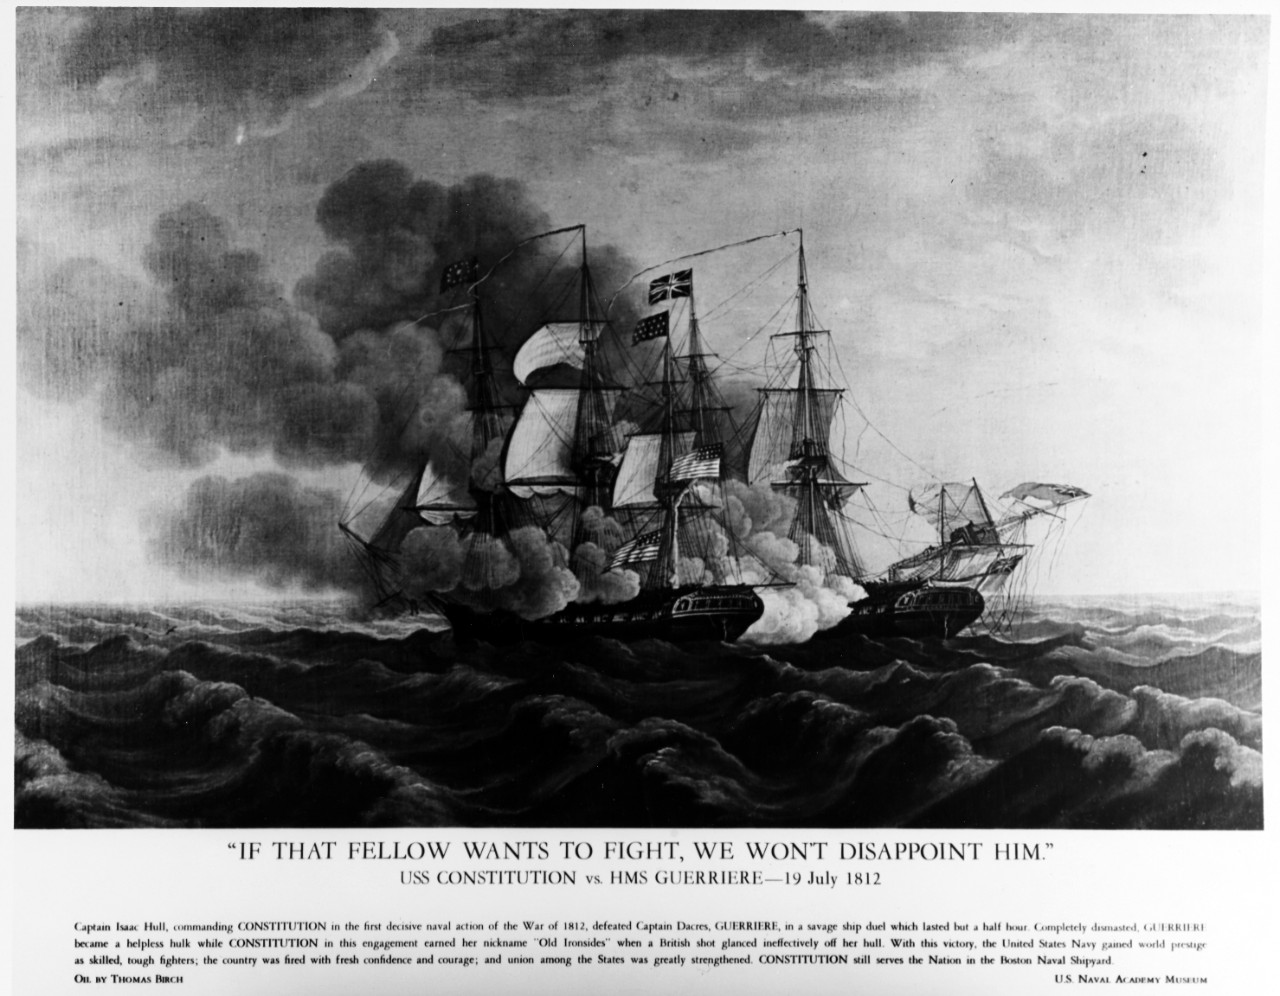 USS CONSTITUTION vs. HMS GUERRIERE, 19 July 1812